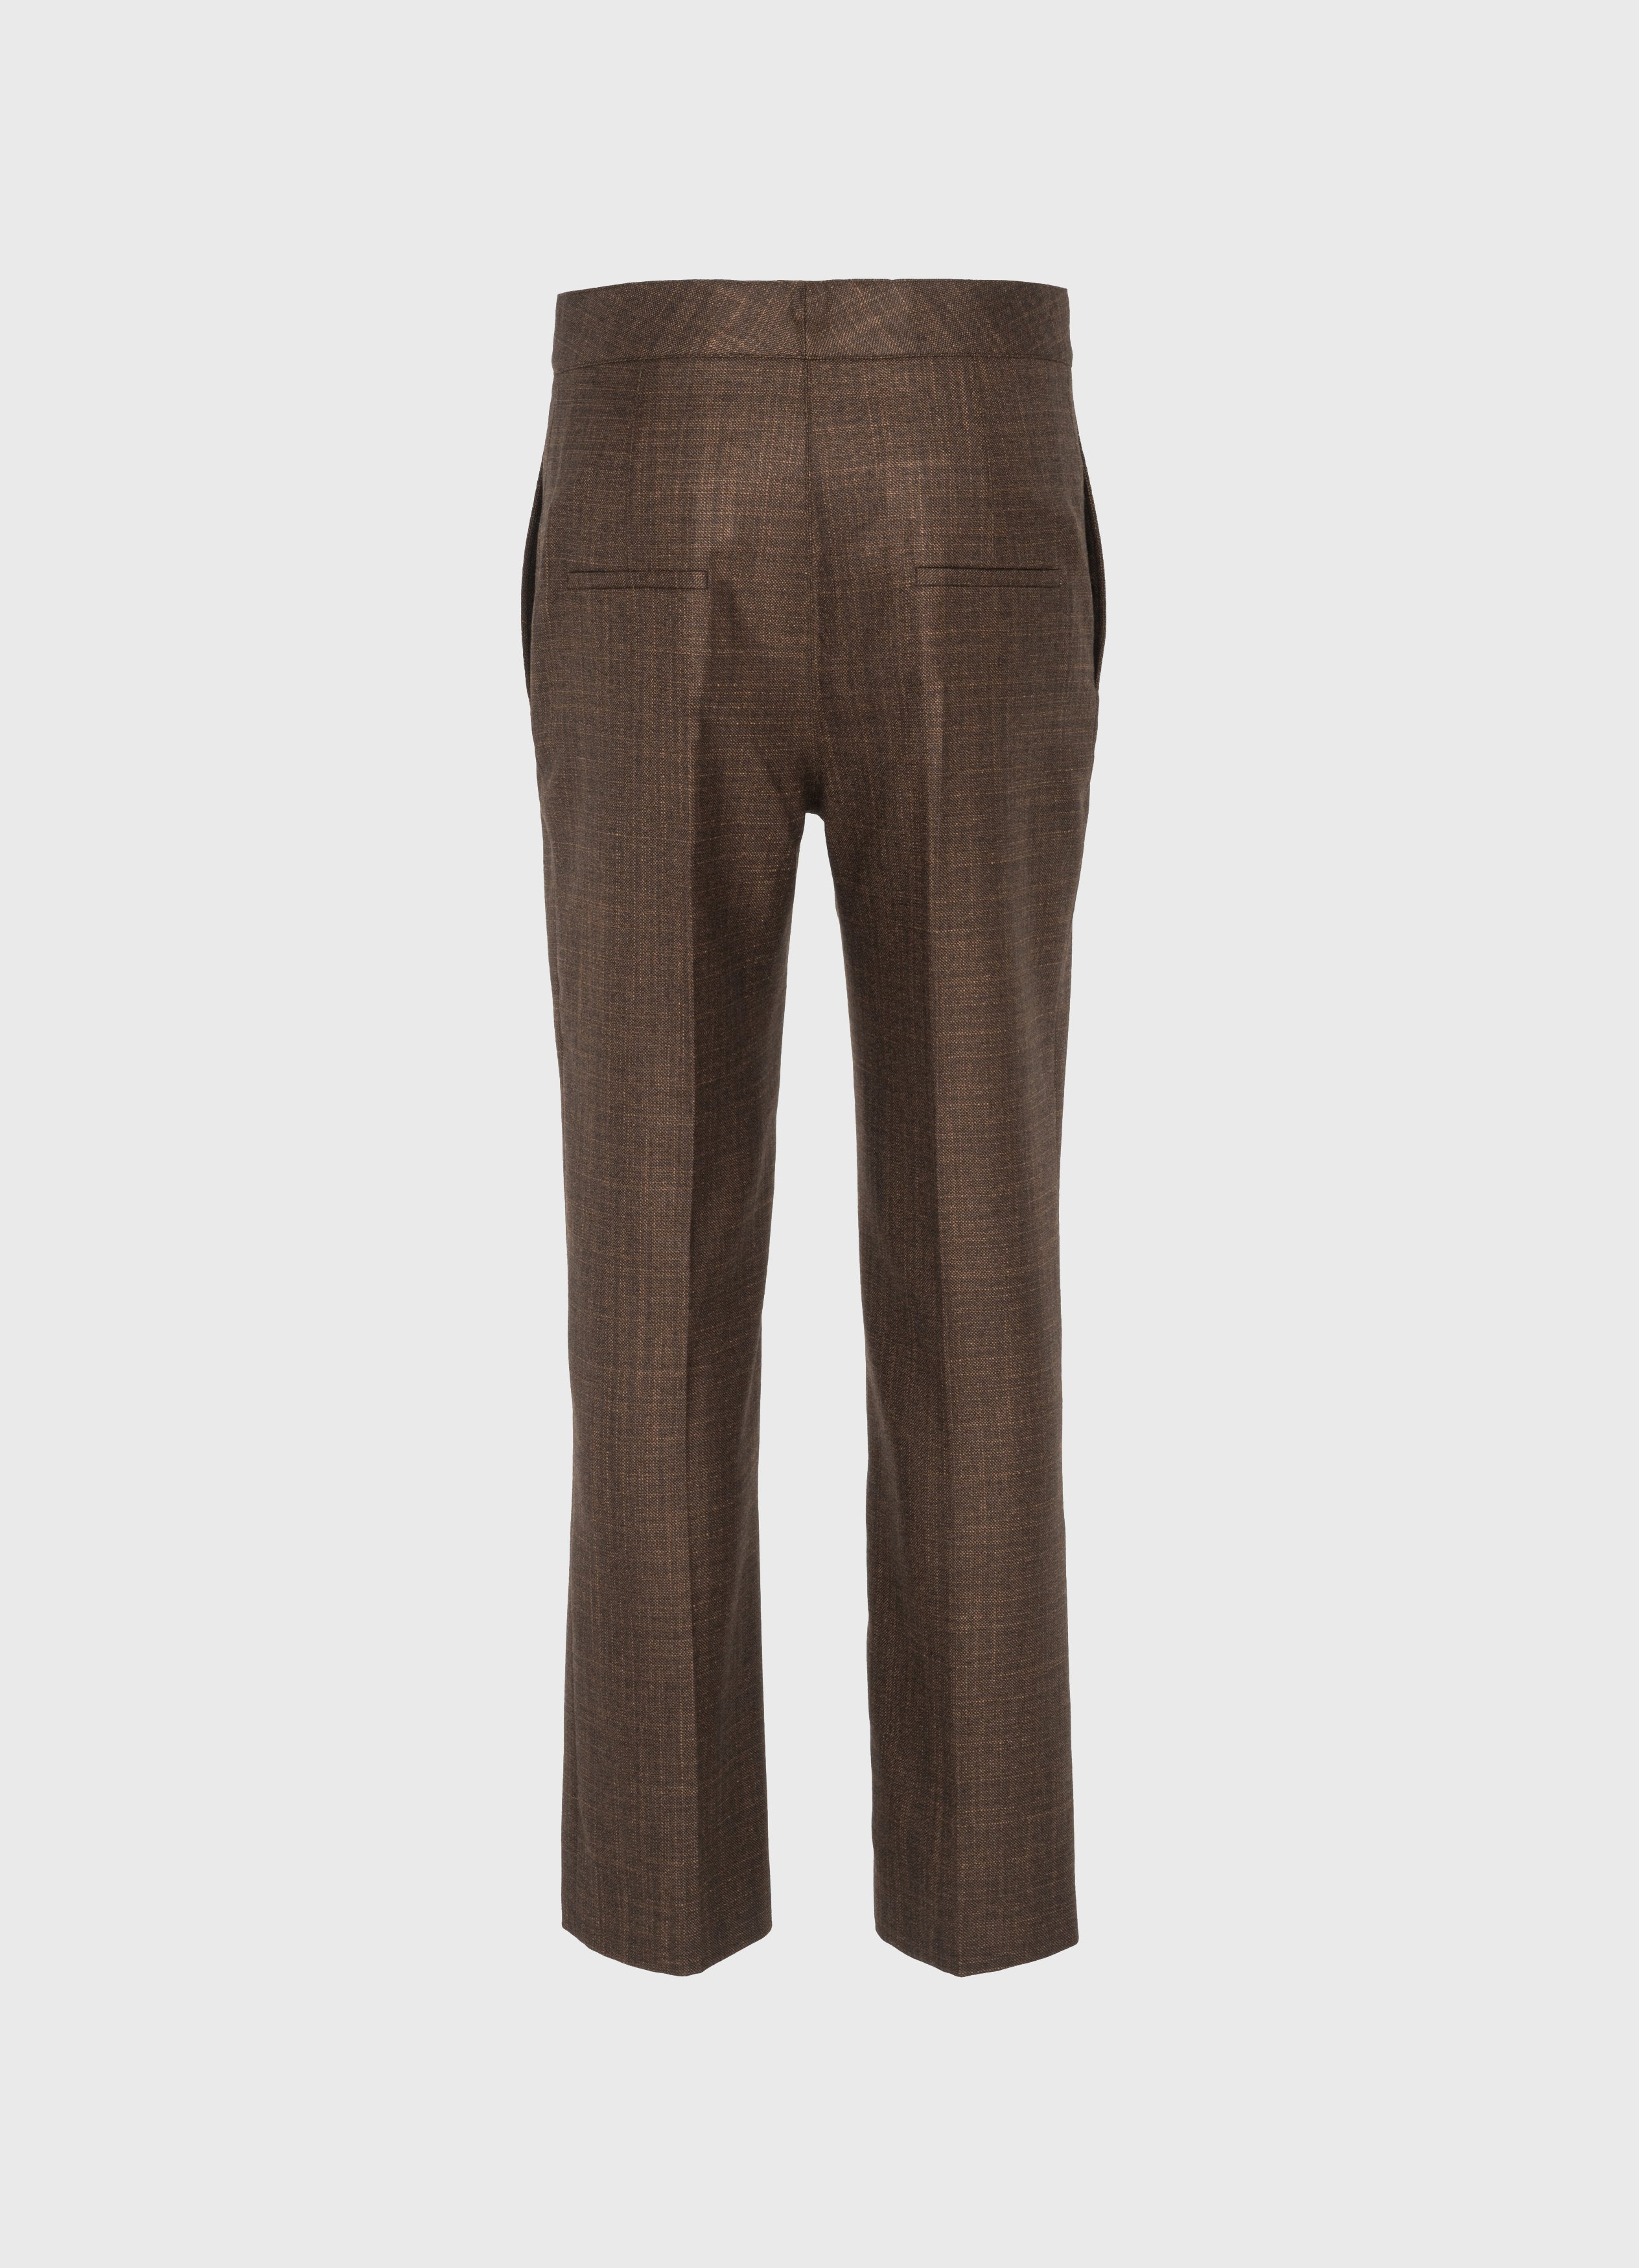 Treviso high-waist trousers